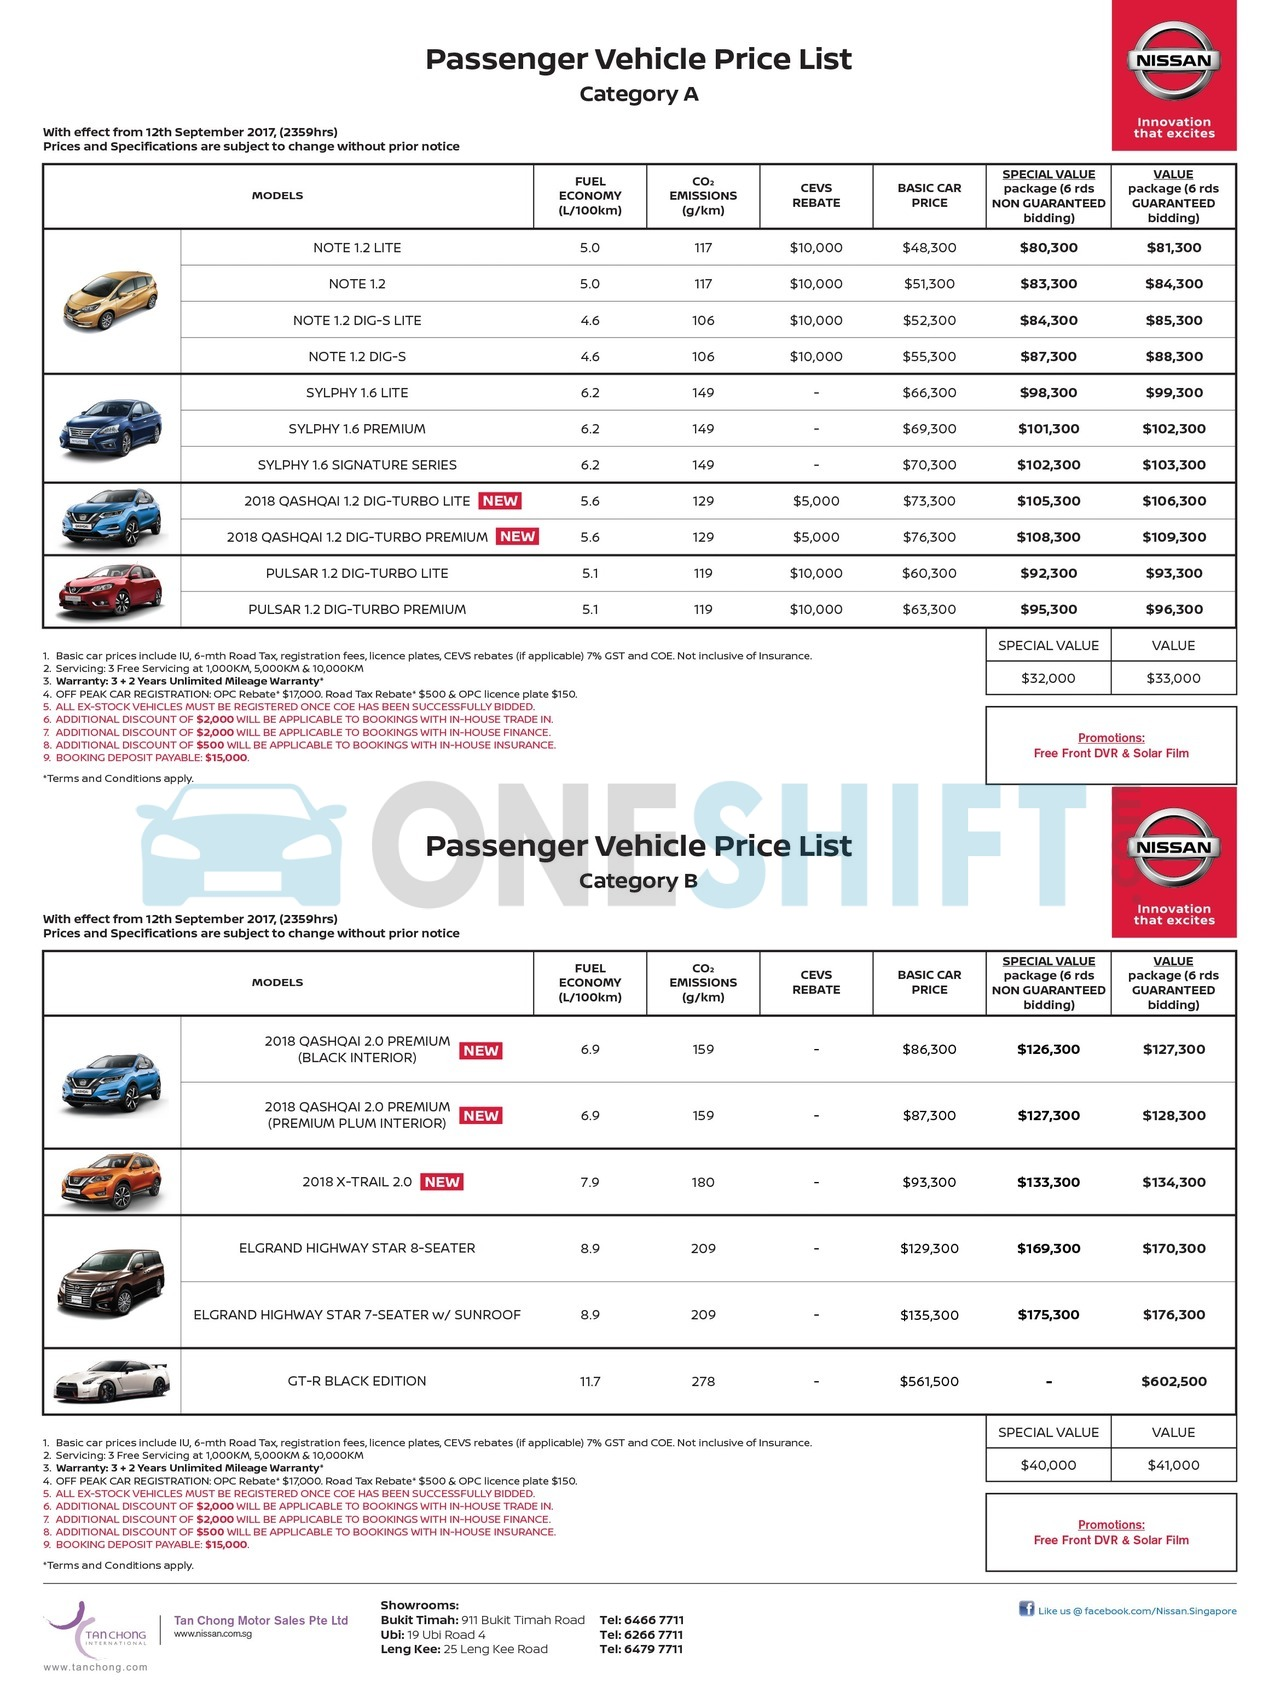 nissan Price List 9-12-2017 Page 1